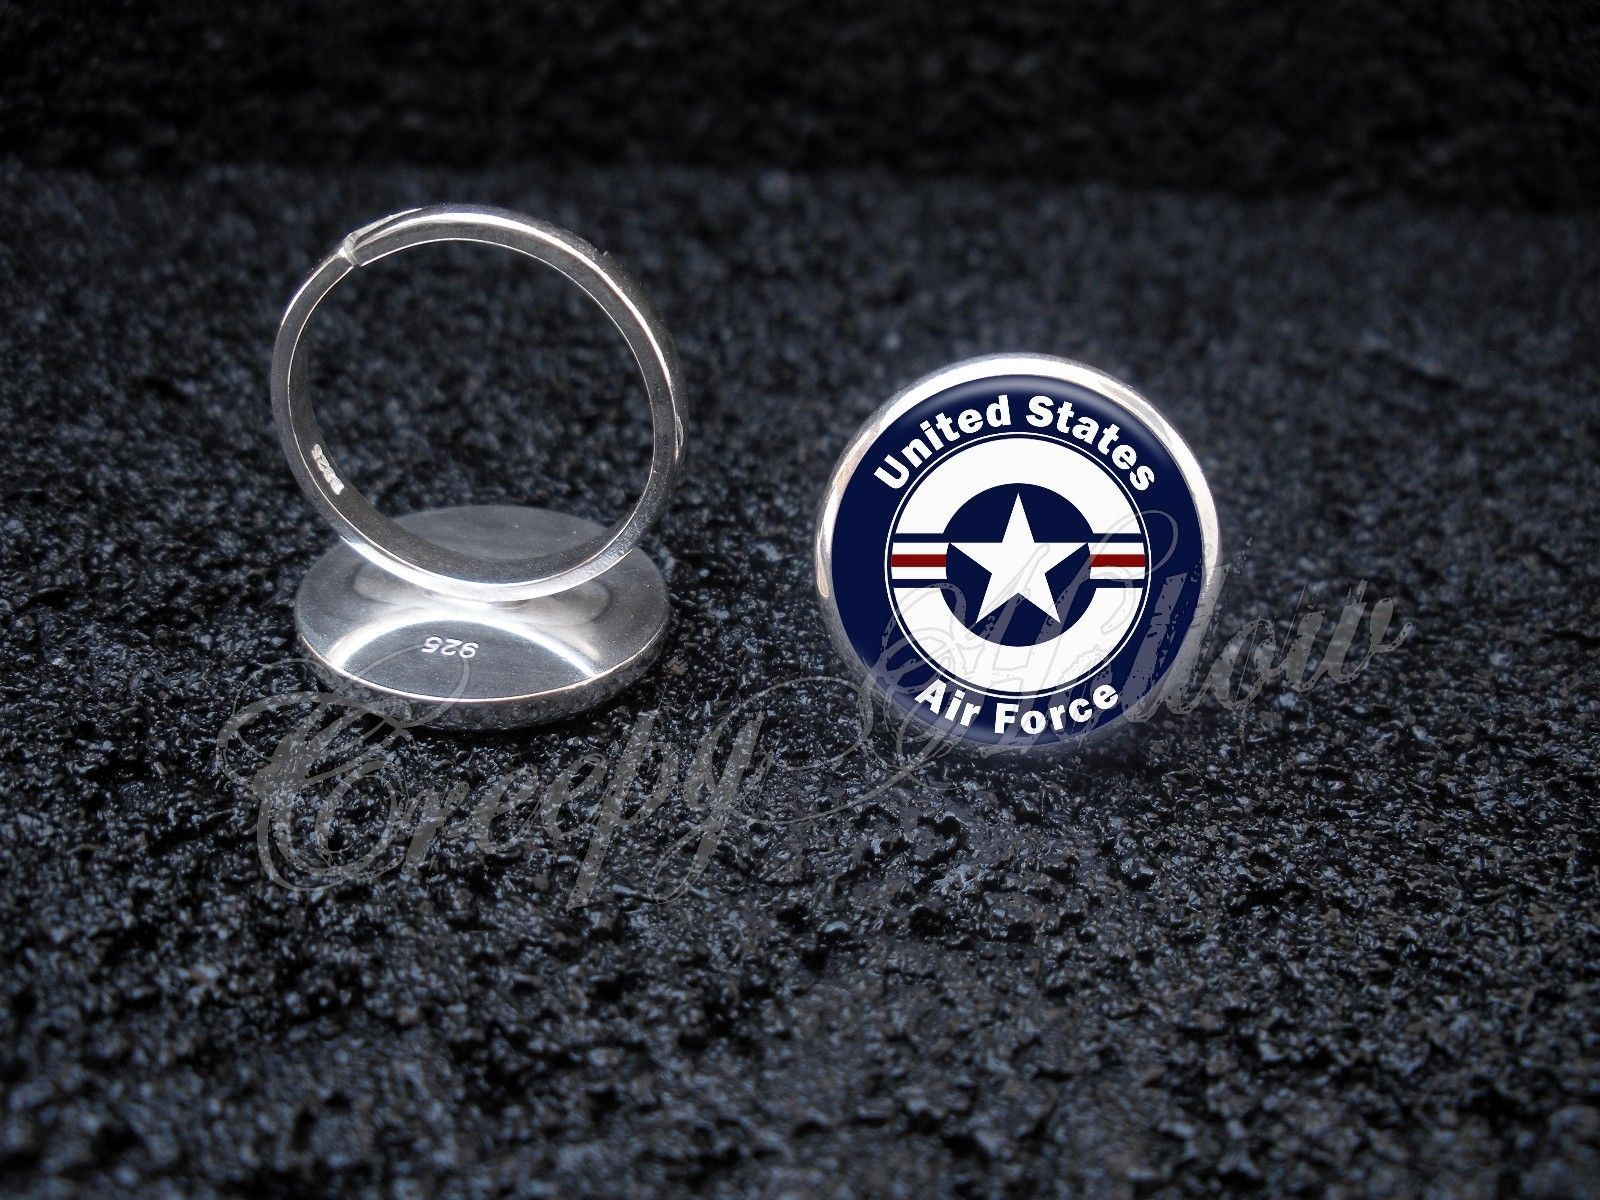 Primary image for 925 Sterling Silver Adjustable Ring United States Air Force Veteran